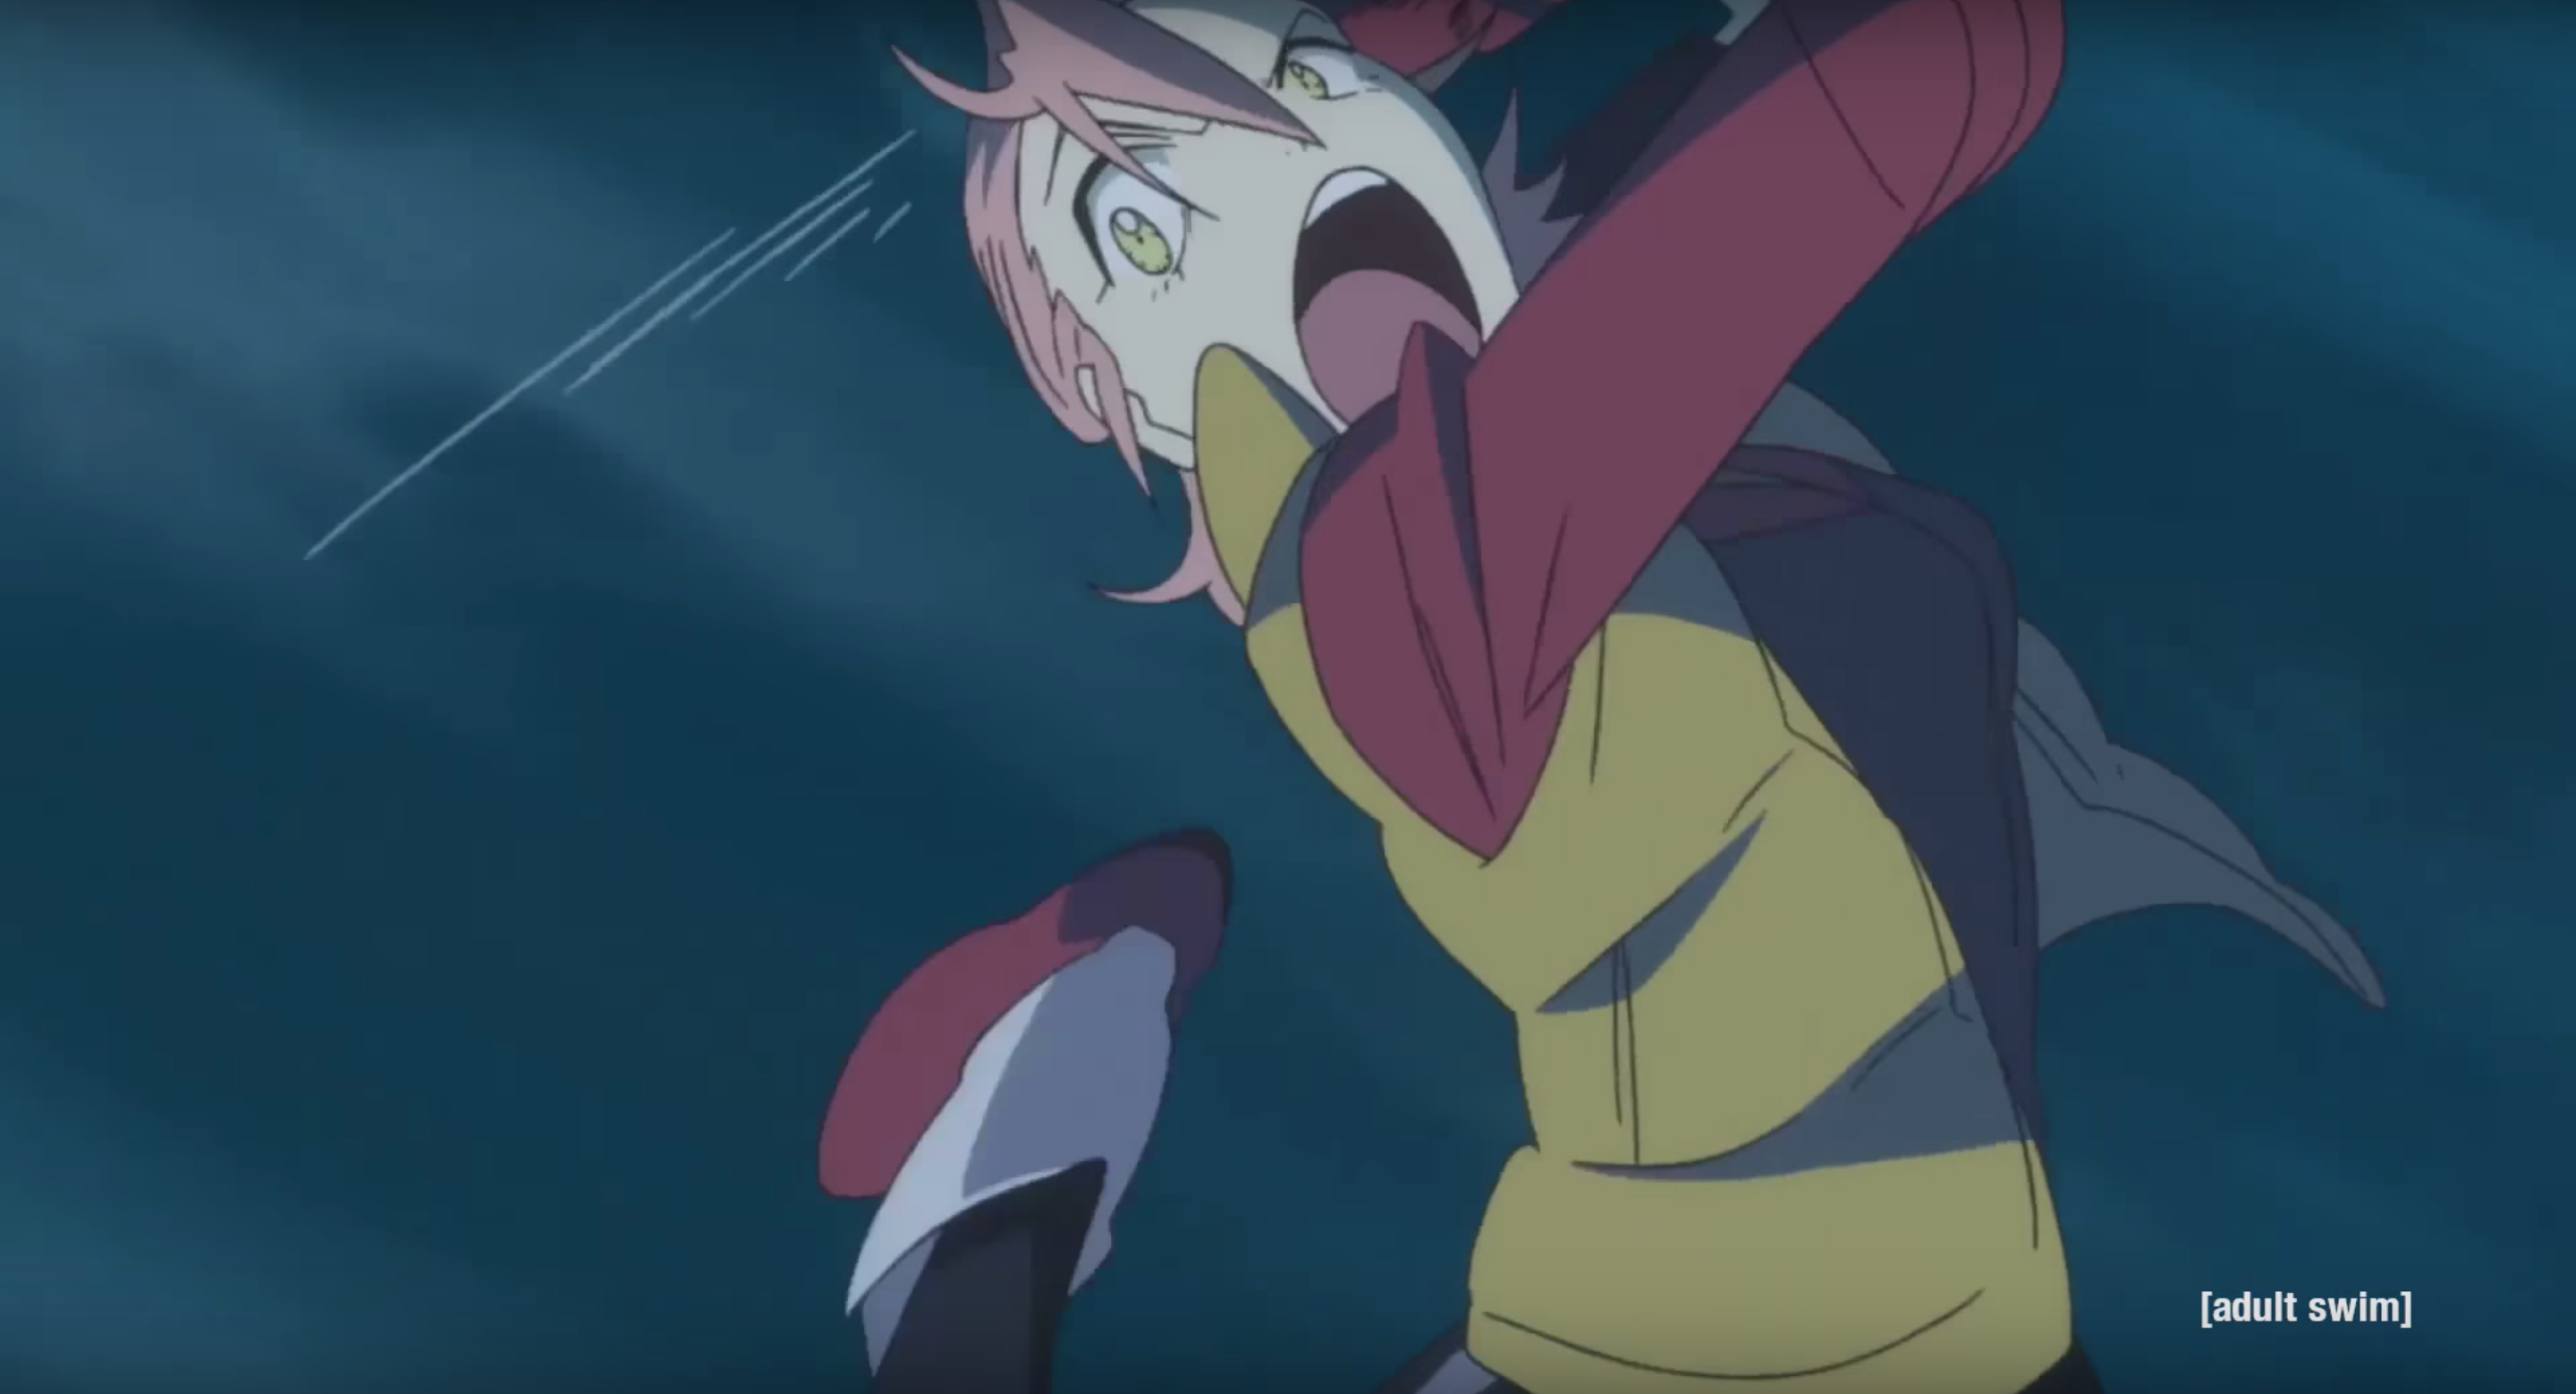 New flcl looks just as stylish and inscrutable as original anime inverse